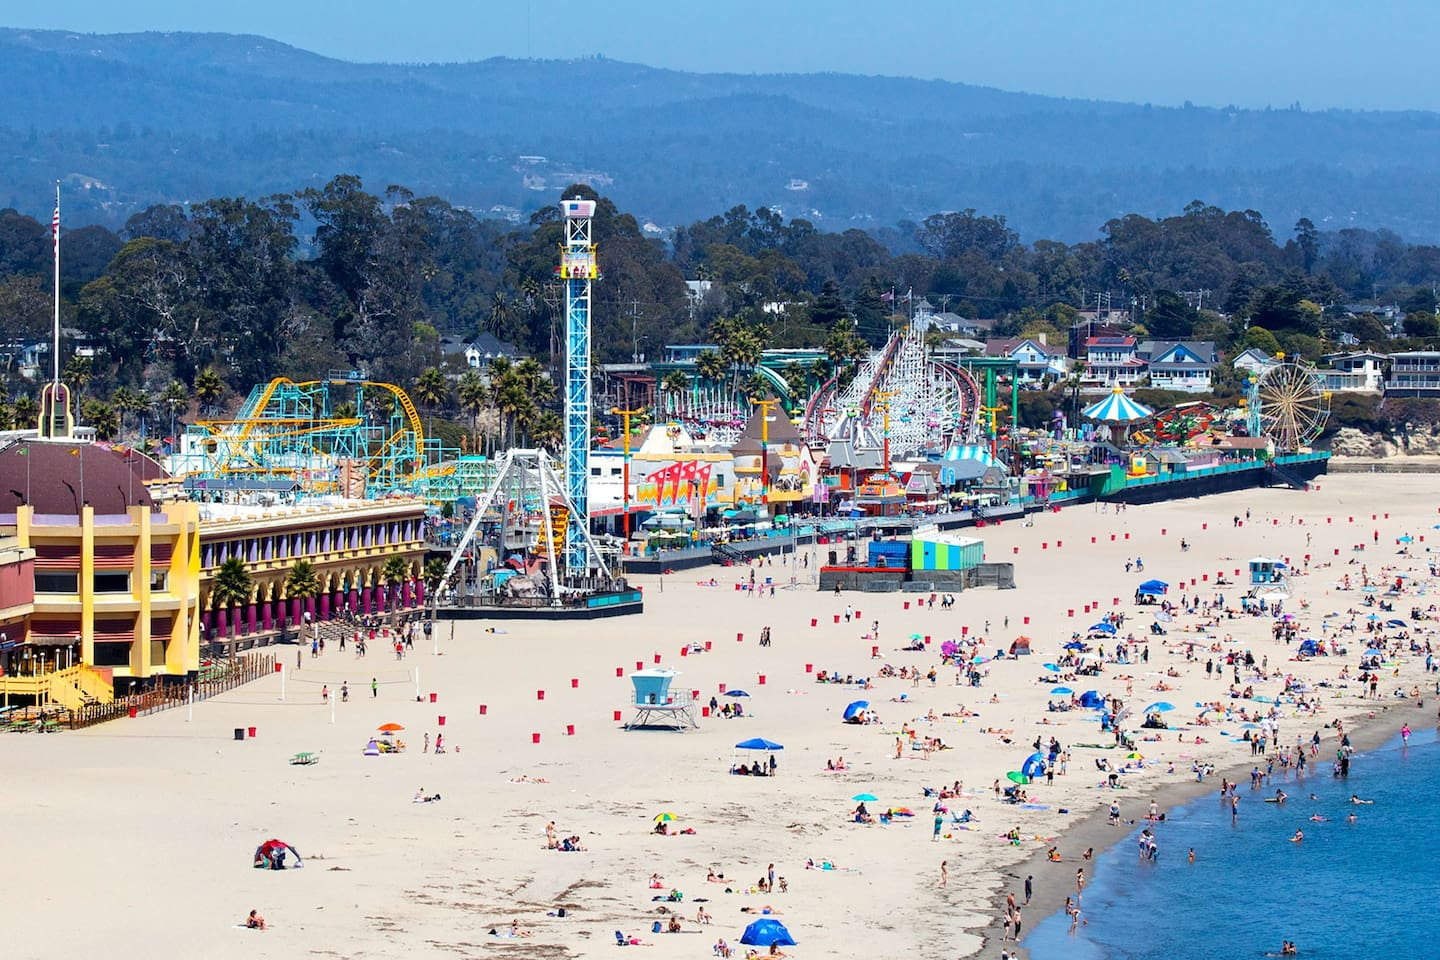 The Santa Cruz Beach Boardwalk is about 25 mins away and a great place to spend the day!